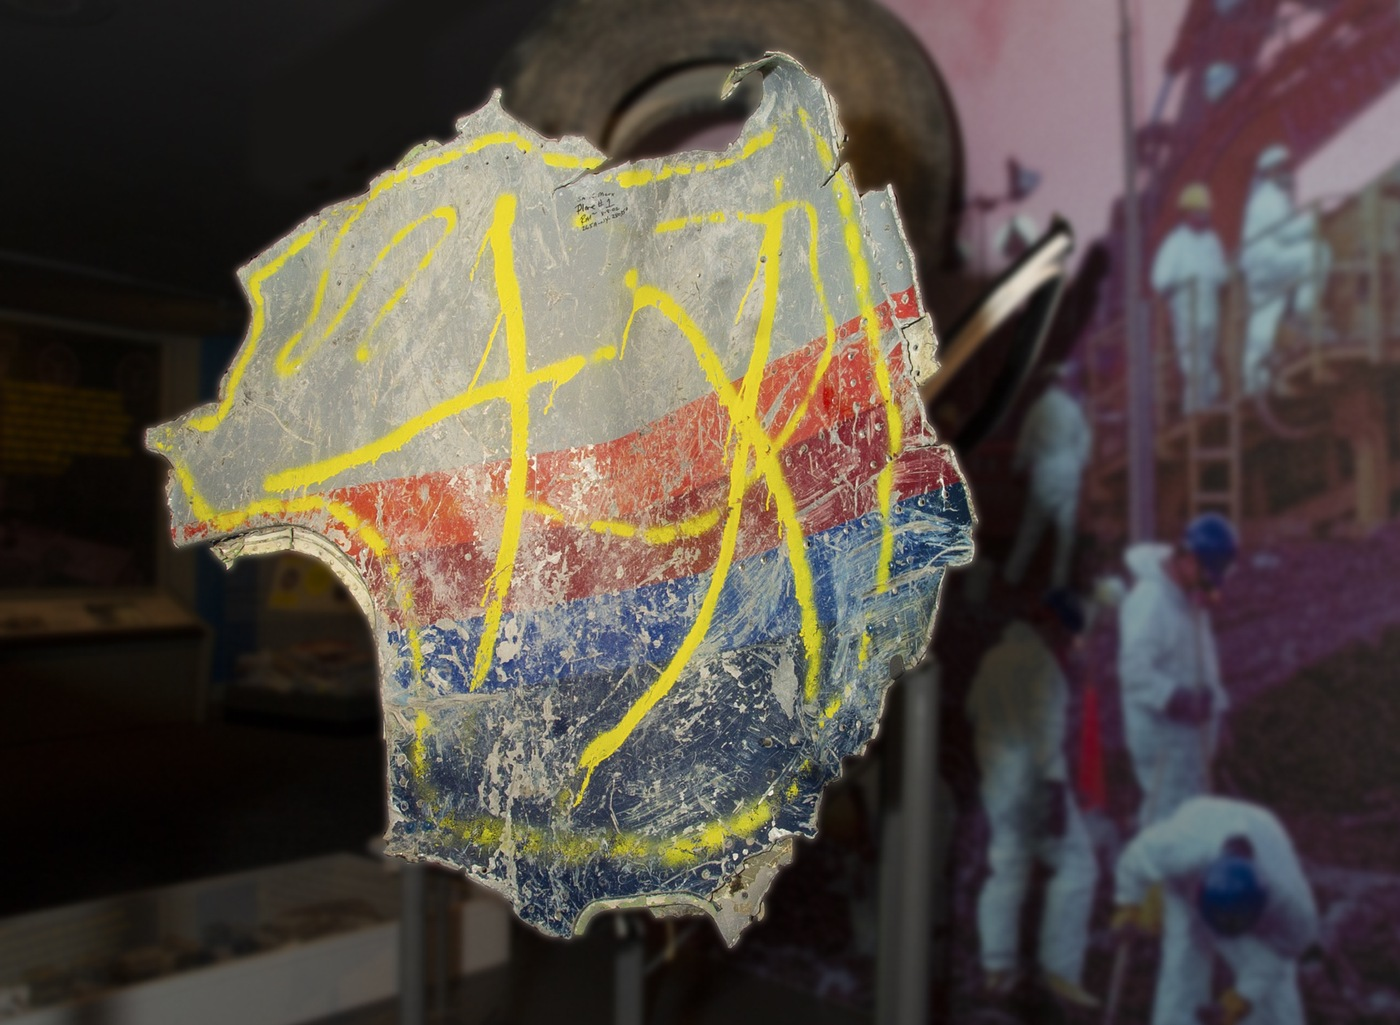 Photo of a portion of the fuselage from United Airlines Flight 175, which hit the World Trade Center south tower in New York City on Sept. 11, 2001.